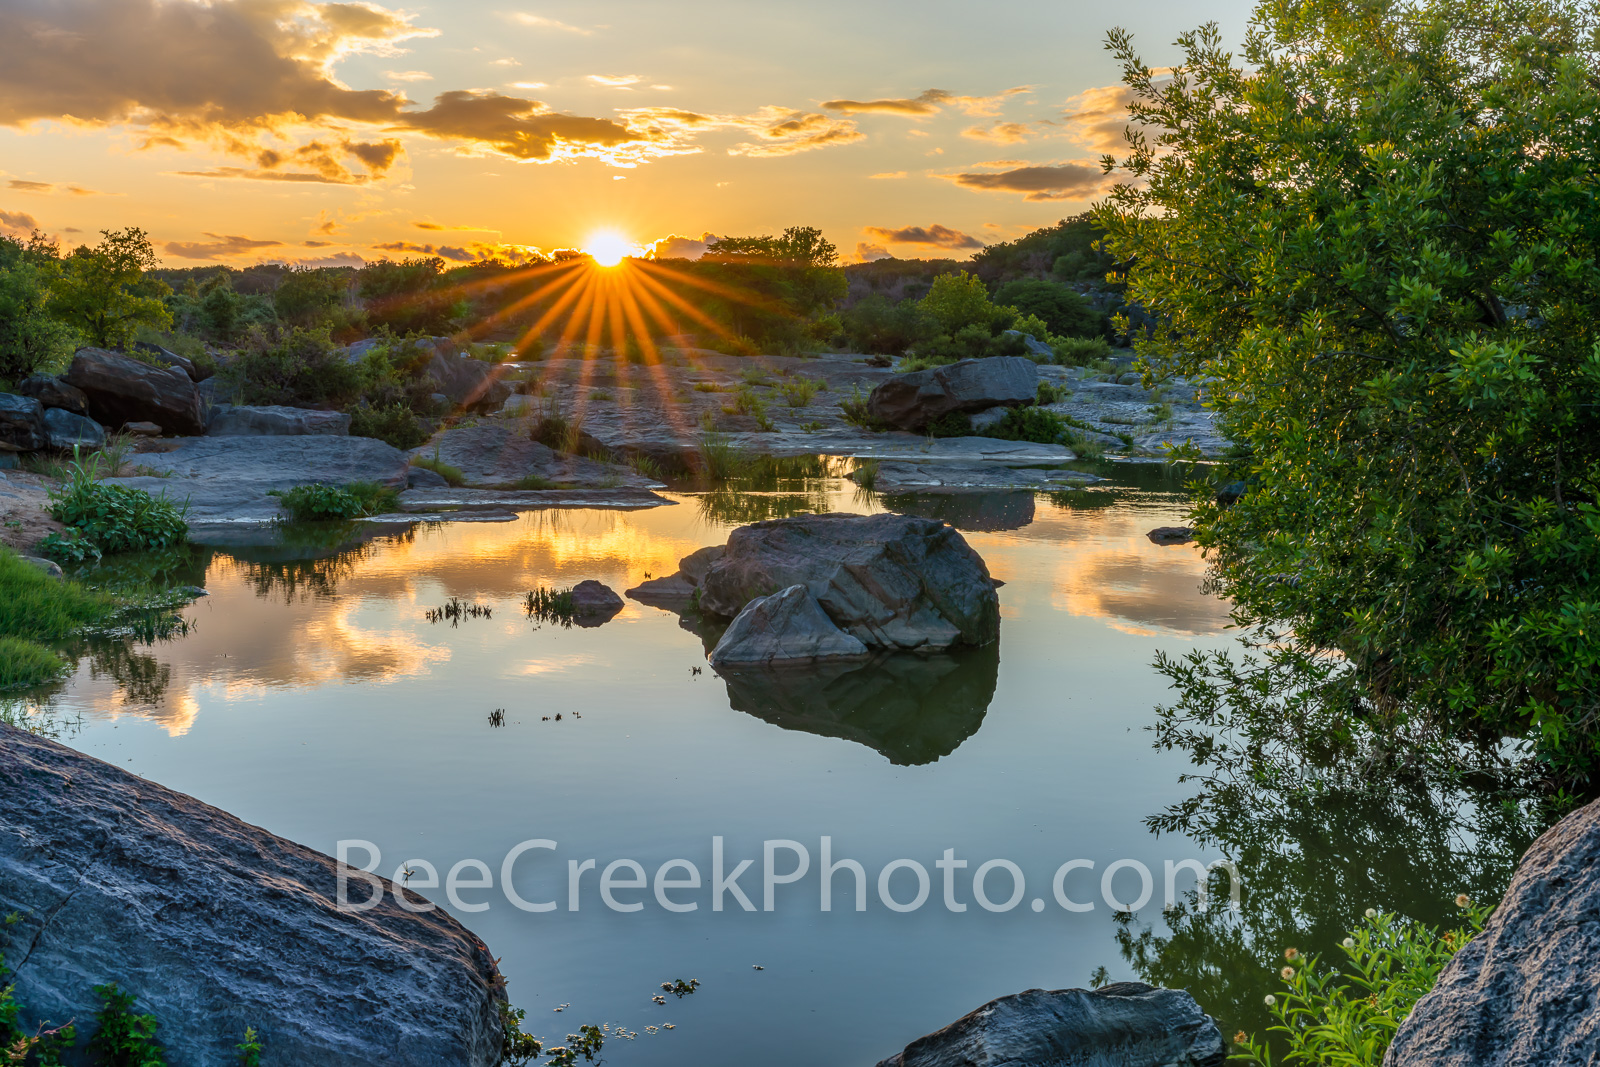 Texas Hill Country Sunset at Pedernales Falls - After taking some images at Pedernales Falls along the rapids I came across this...